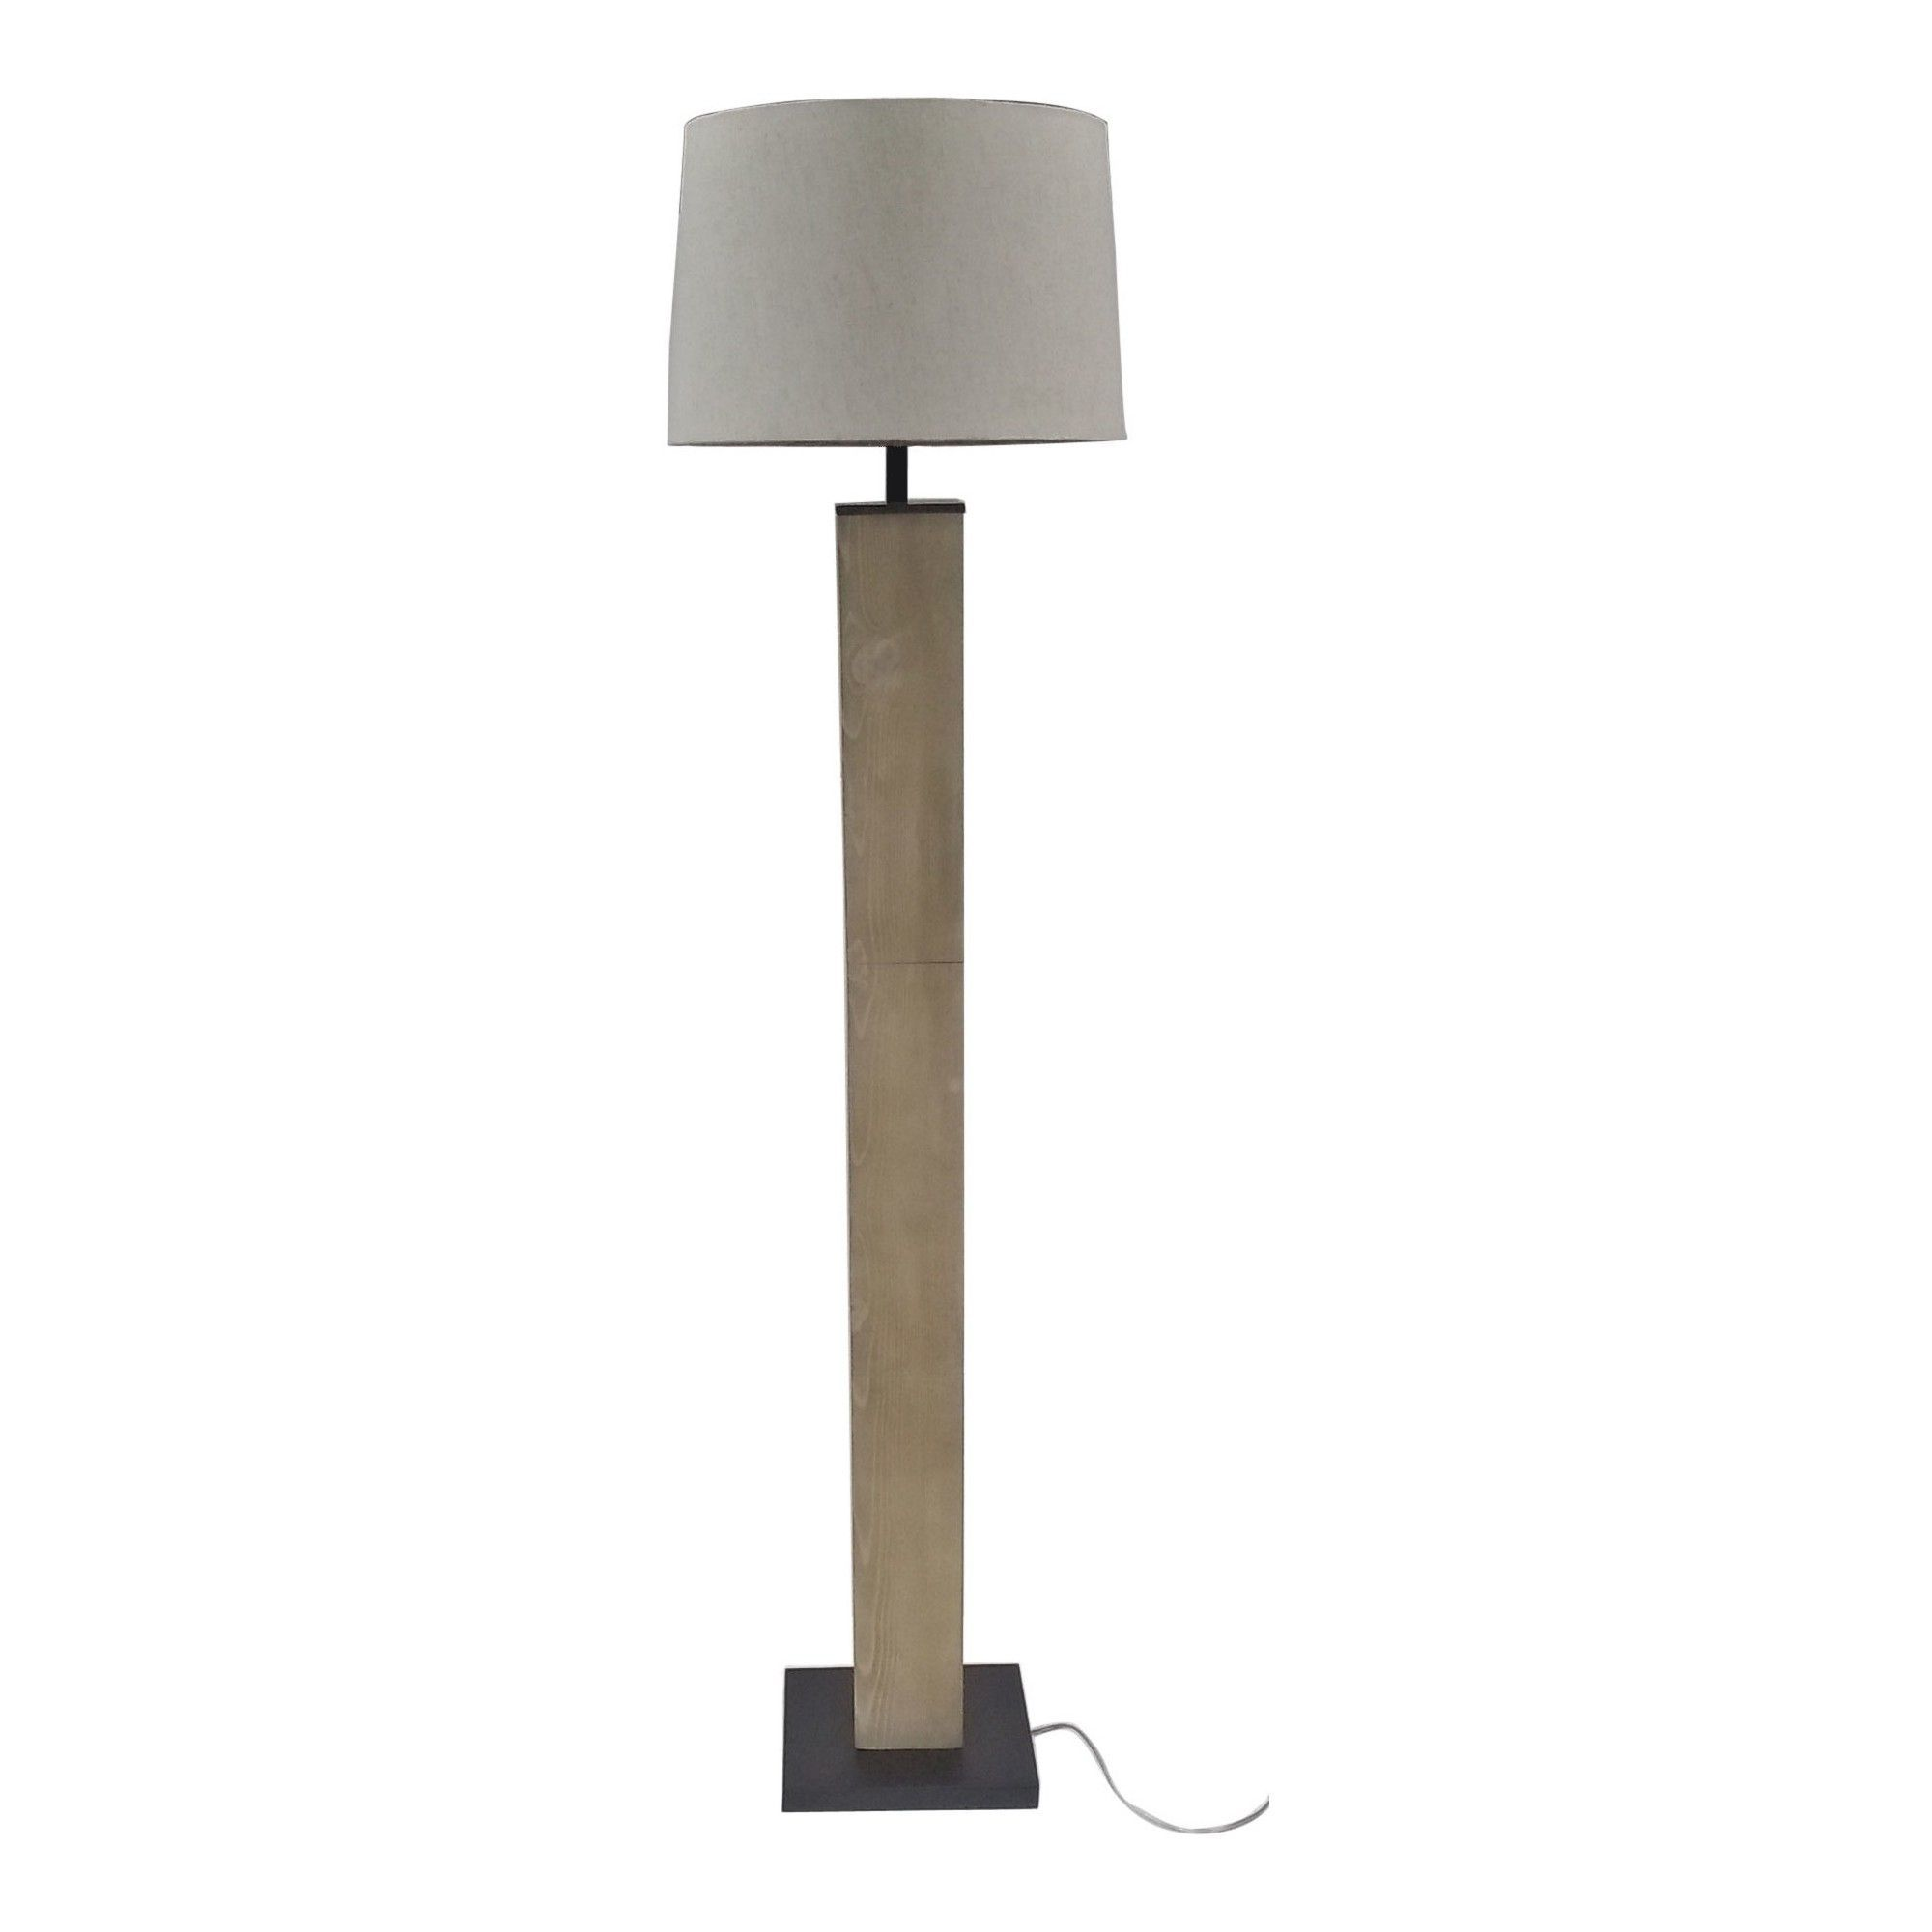 Design for Good Wood Floor Lamp (Includes Cfl) Gray